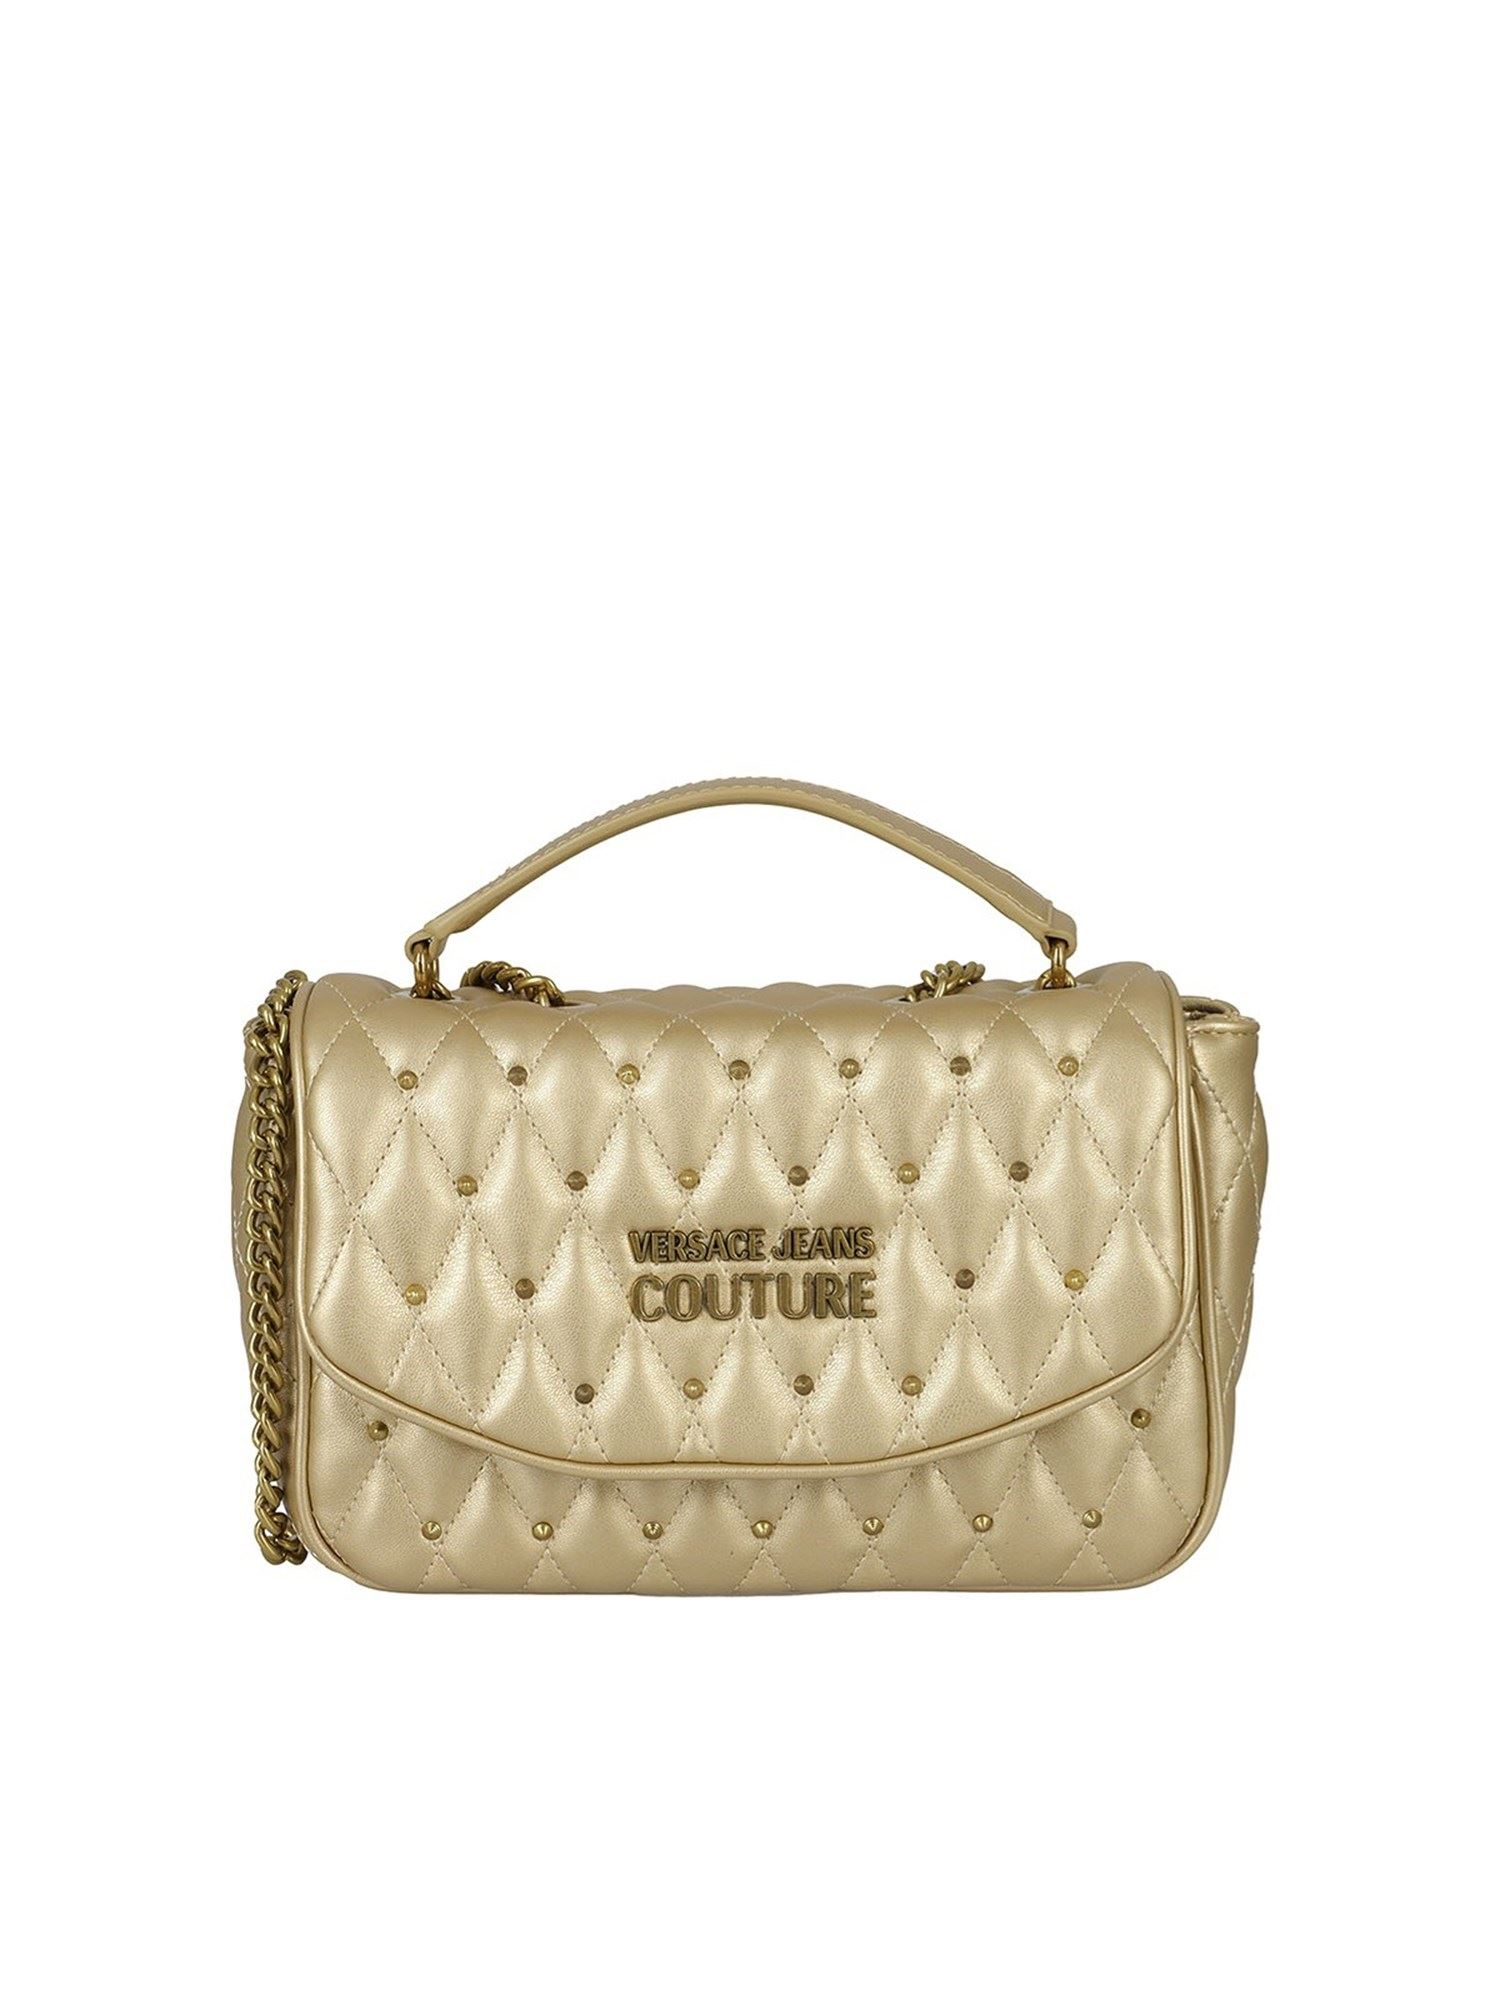 Versace Jeans Couture Leathers STUDDED CROSSBODY BAG IN GOLD COLOR